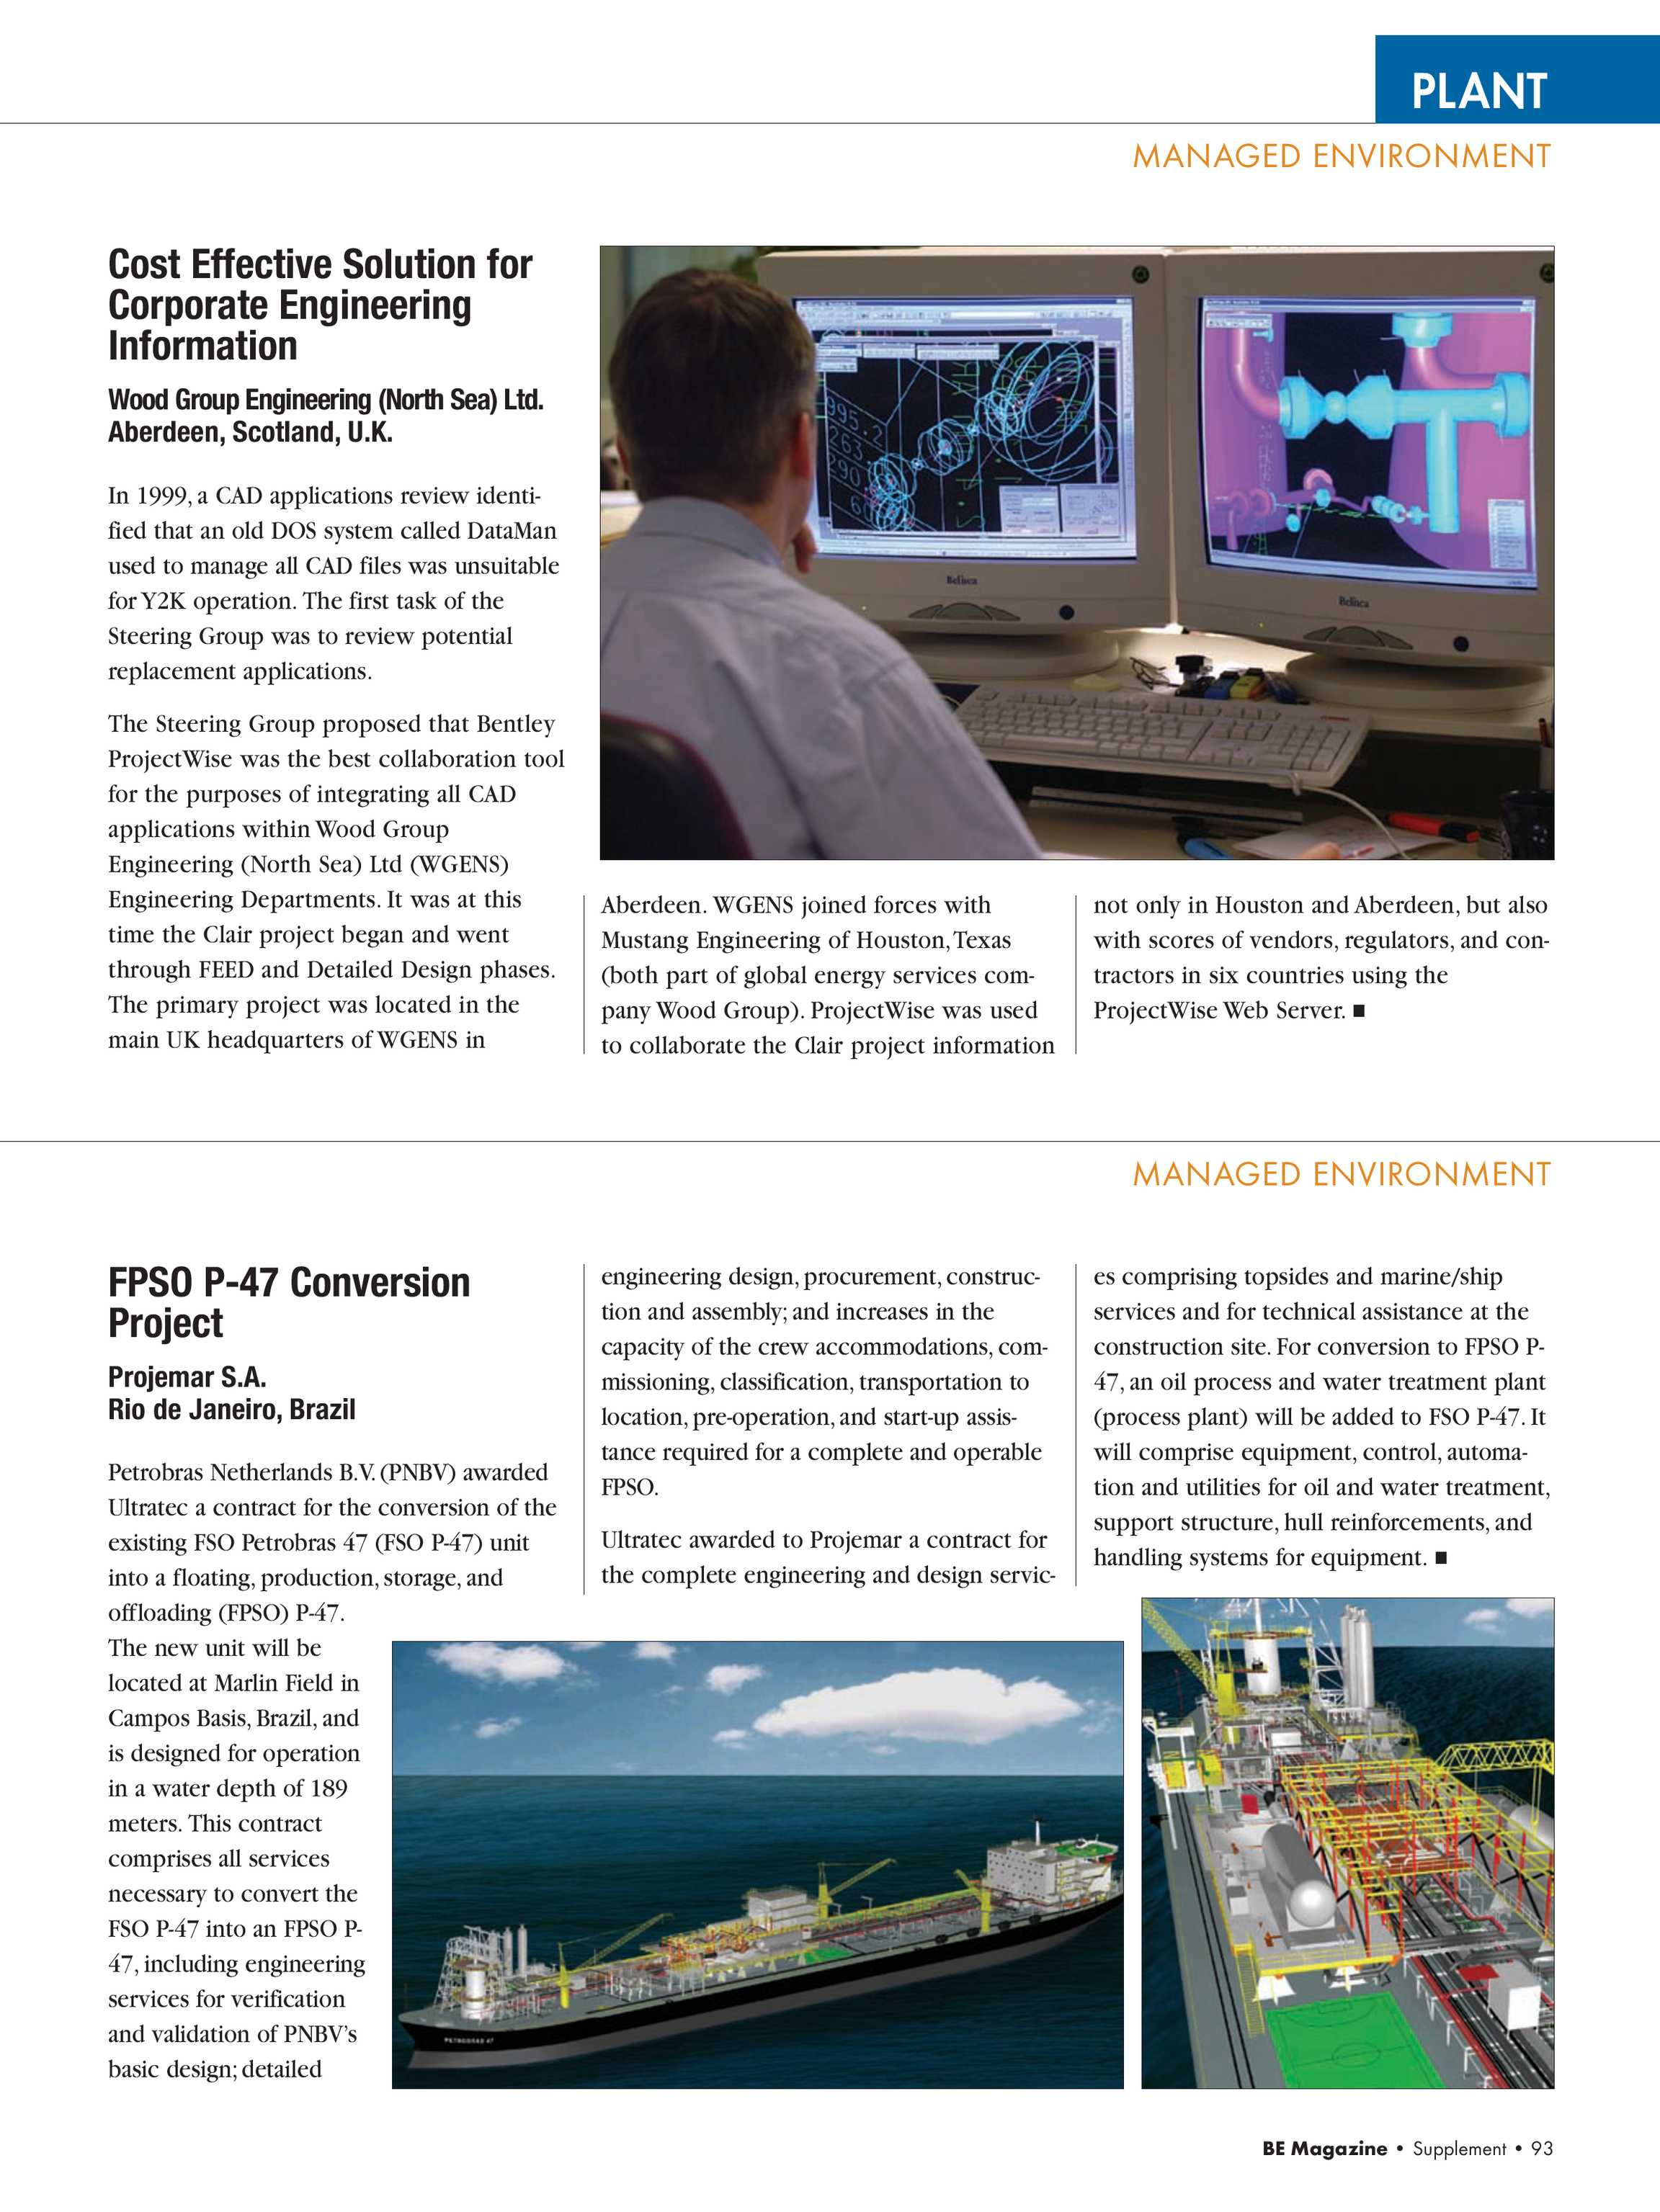 Year In Infrastructure 2004 - page 93